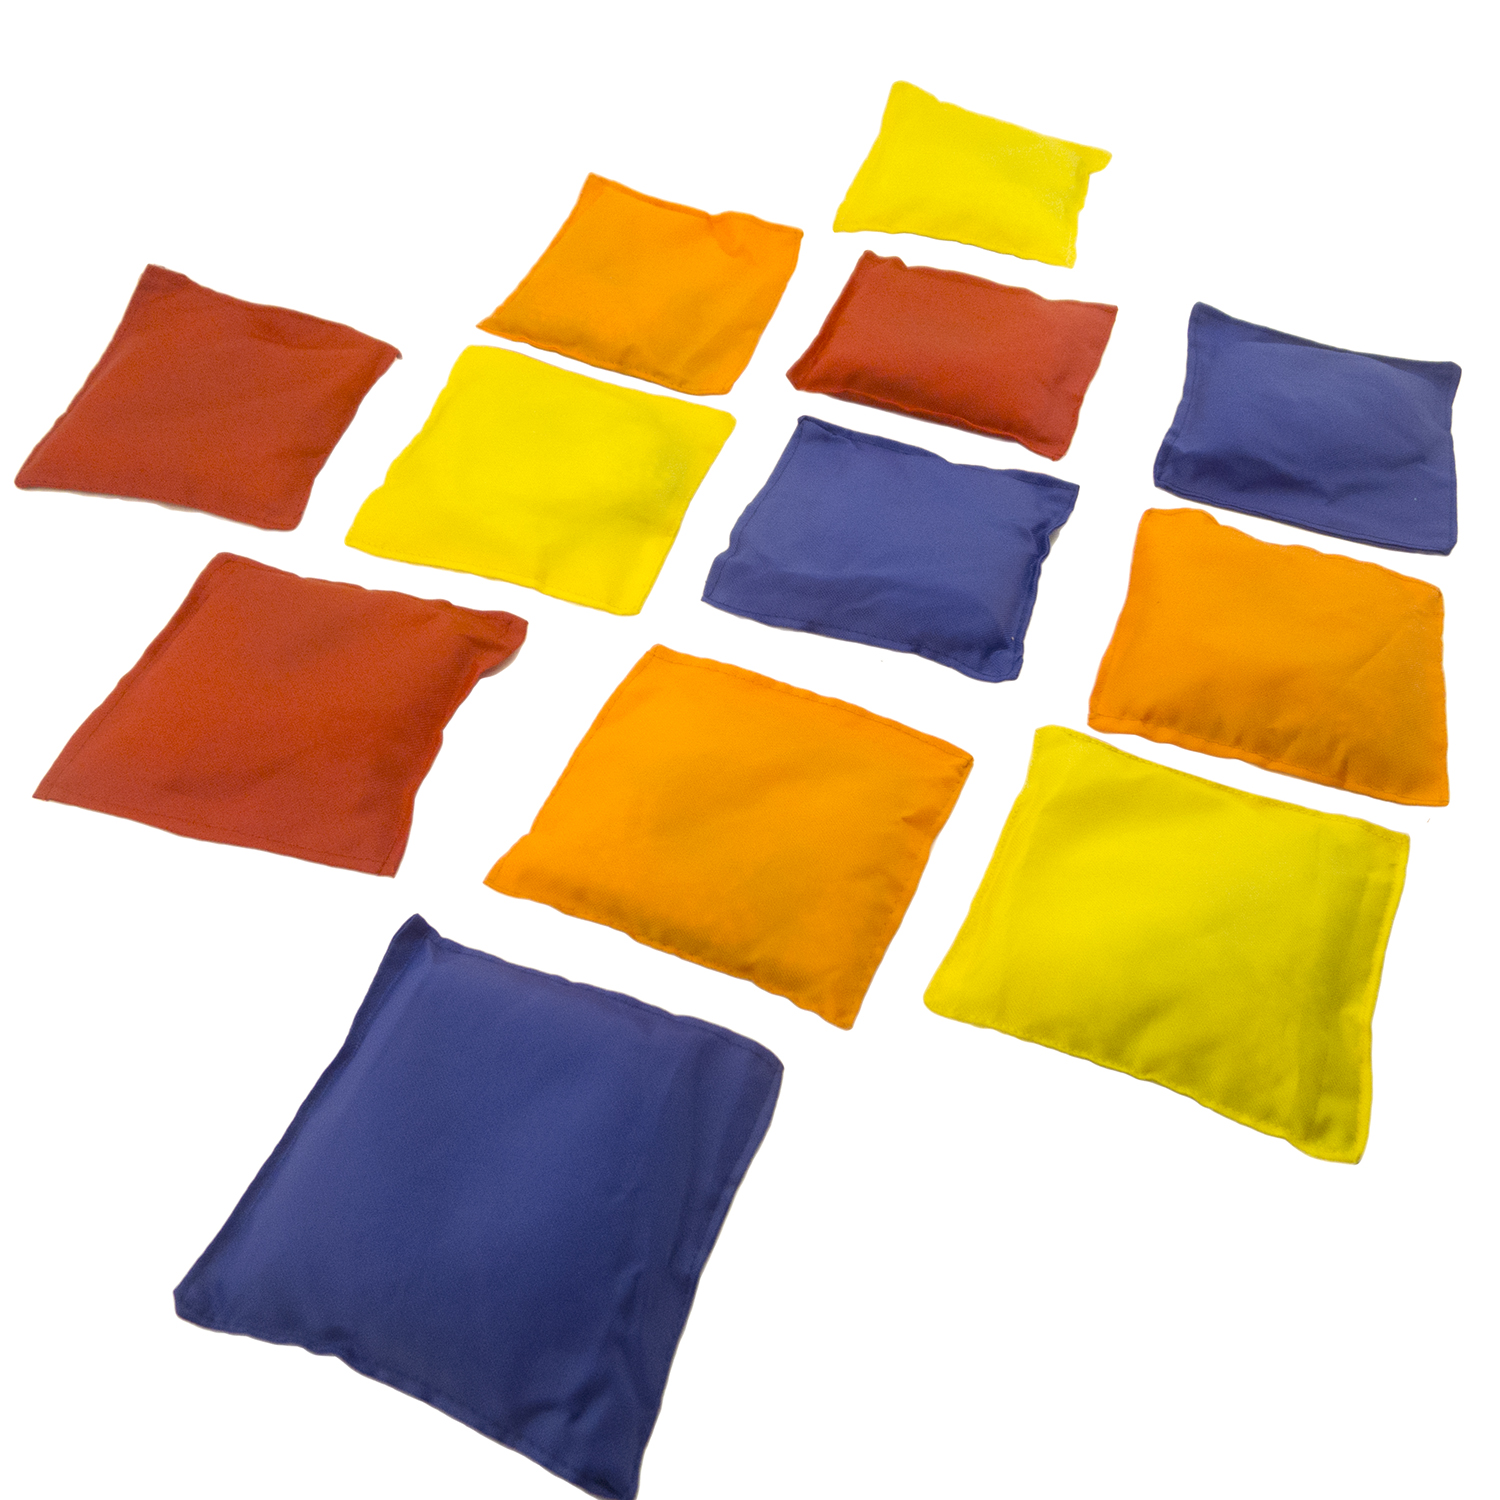 12pk Nylon 5 Bean Bags Cornhole Bag Toss Game Baggo